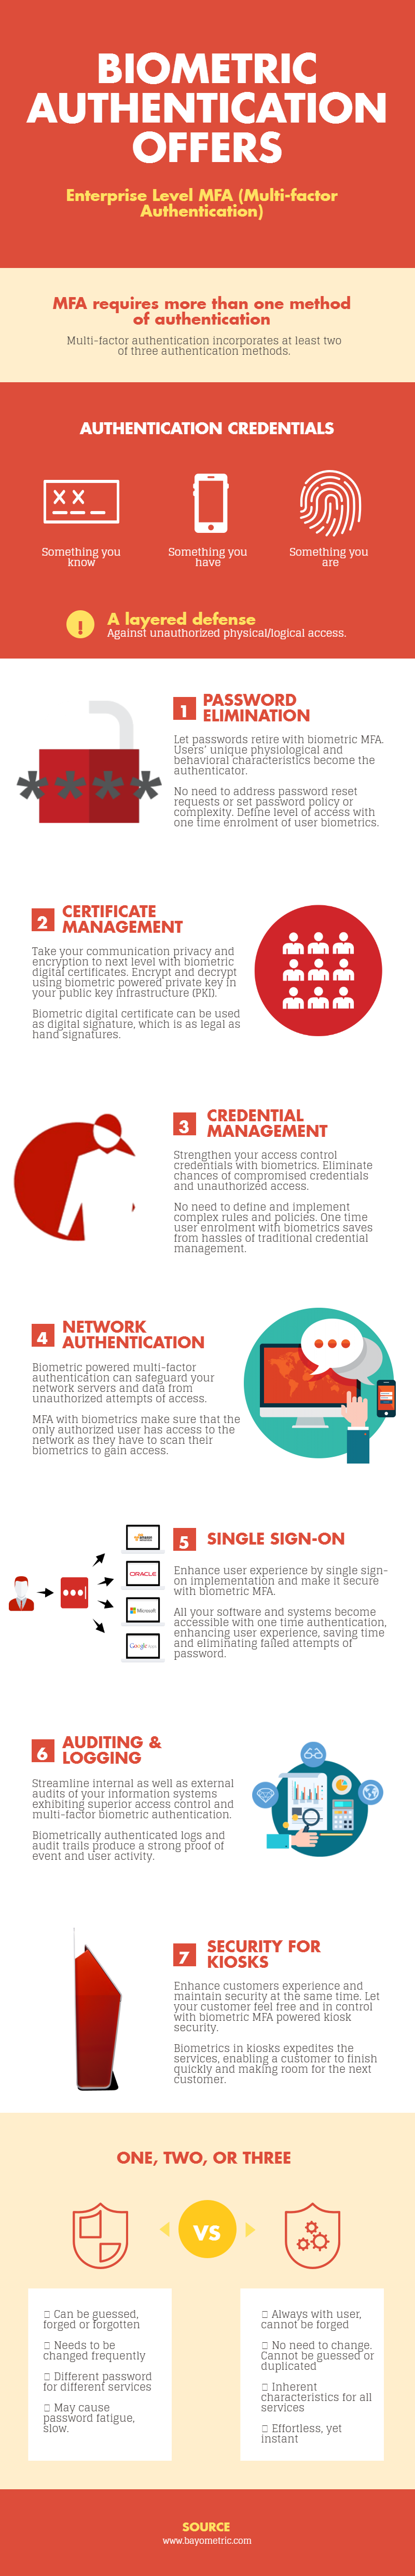 Multi-factor Authentication With Biometrics